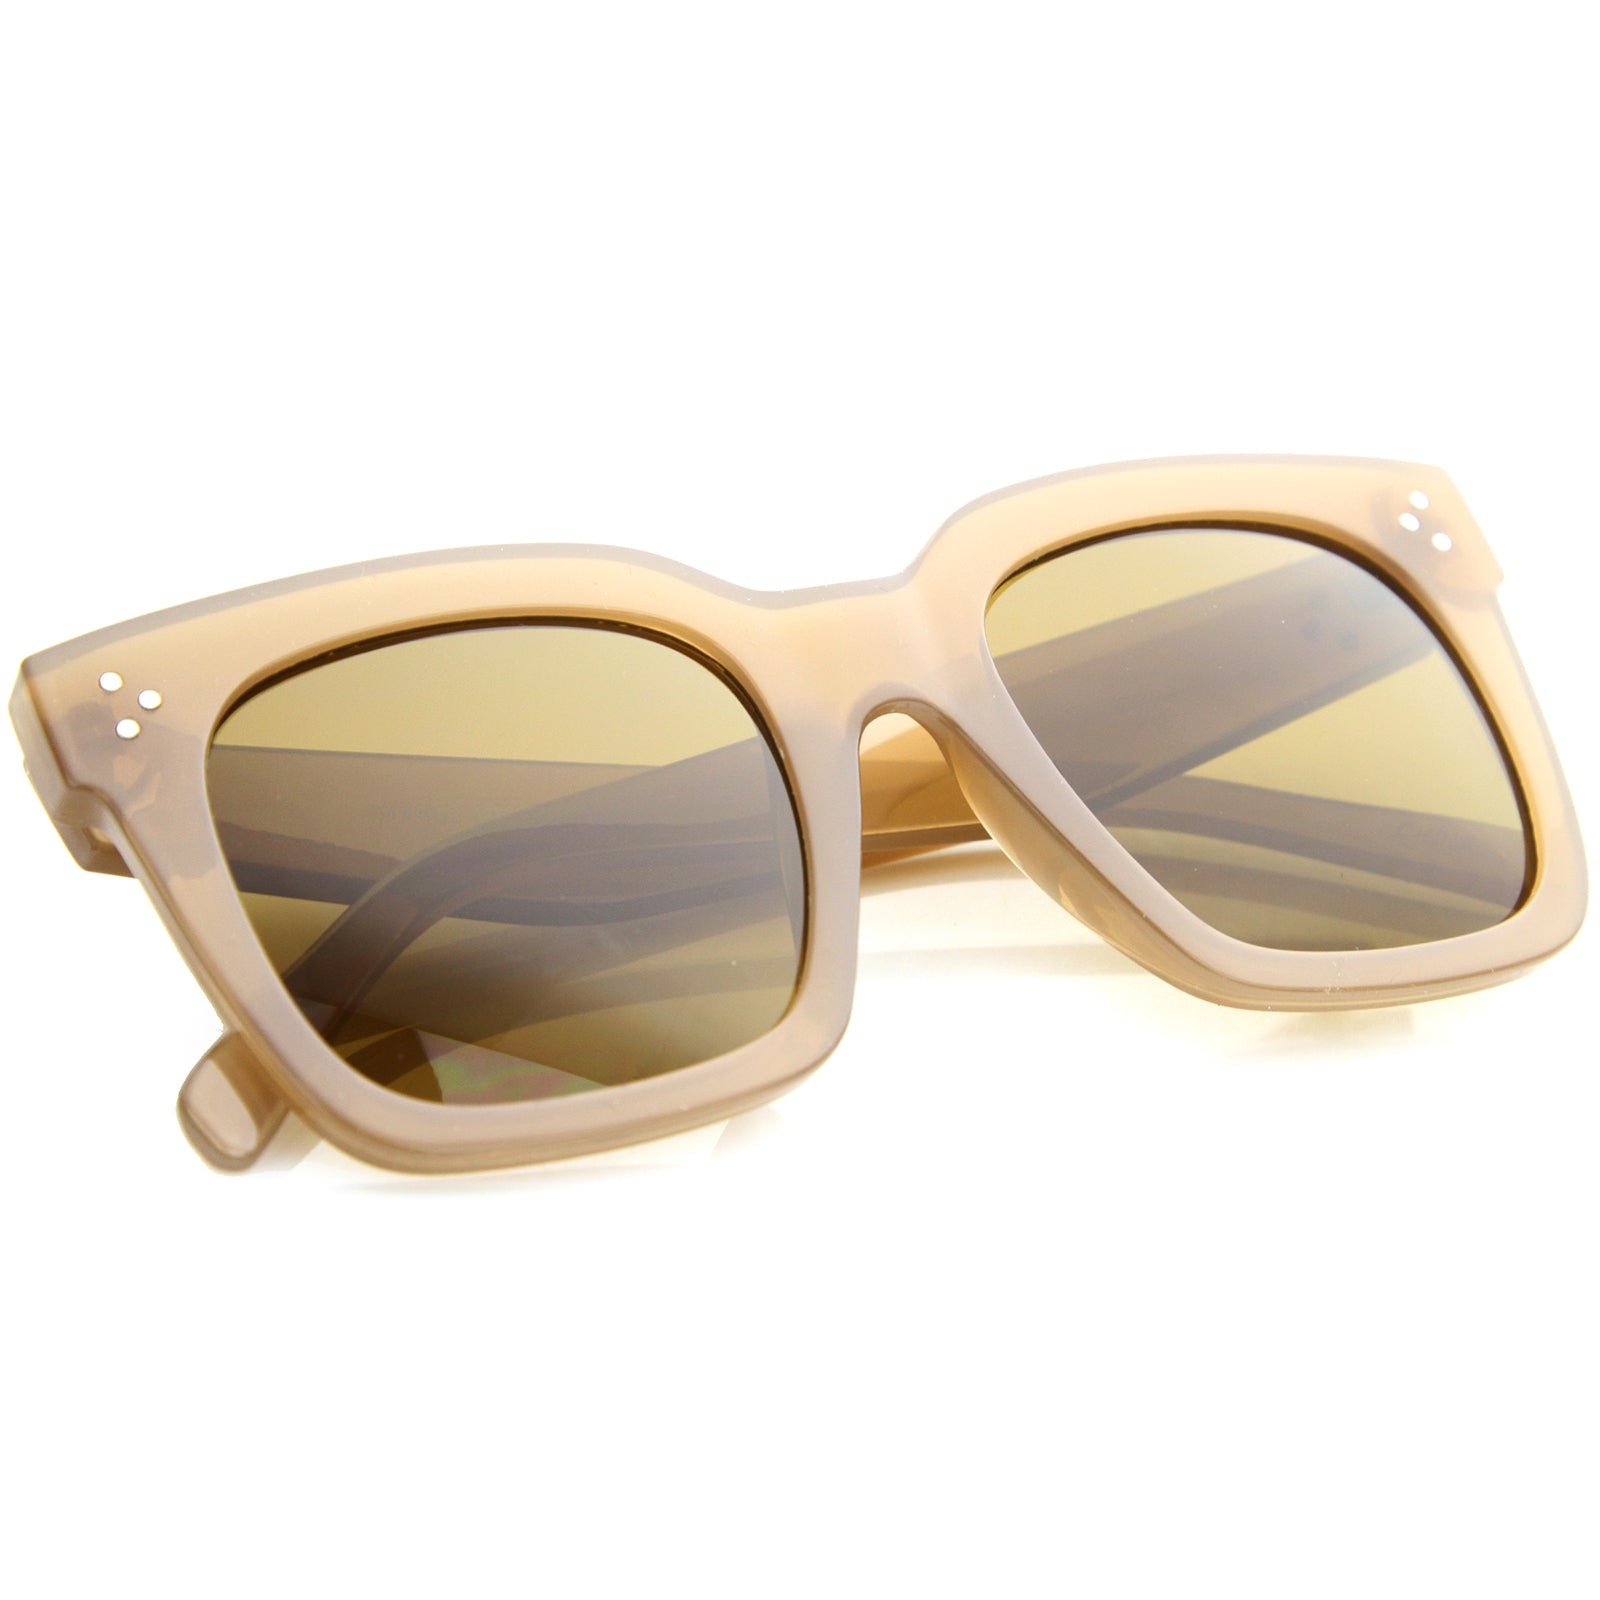 Womens Horn Rimmed Sunglasses With UV400 Protected Gradient Lens - sunglass.la - 16